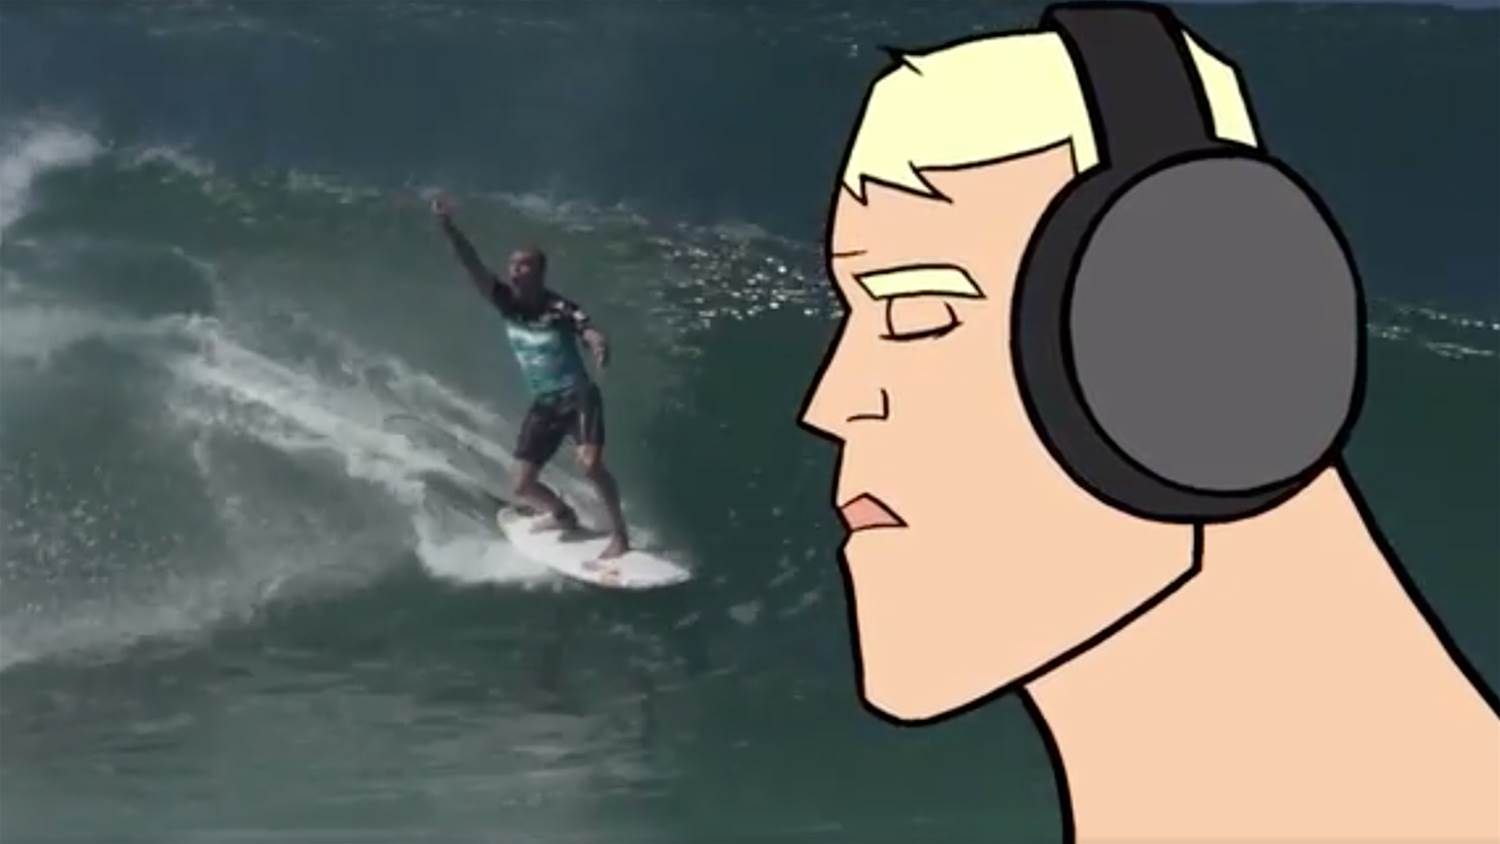 The Goal | An Animated Glimpse Into the Incredible life Story of Mick Fanning